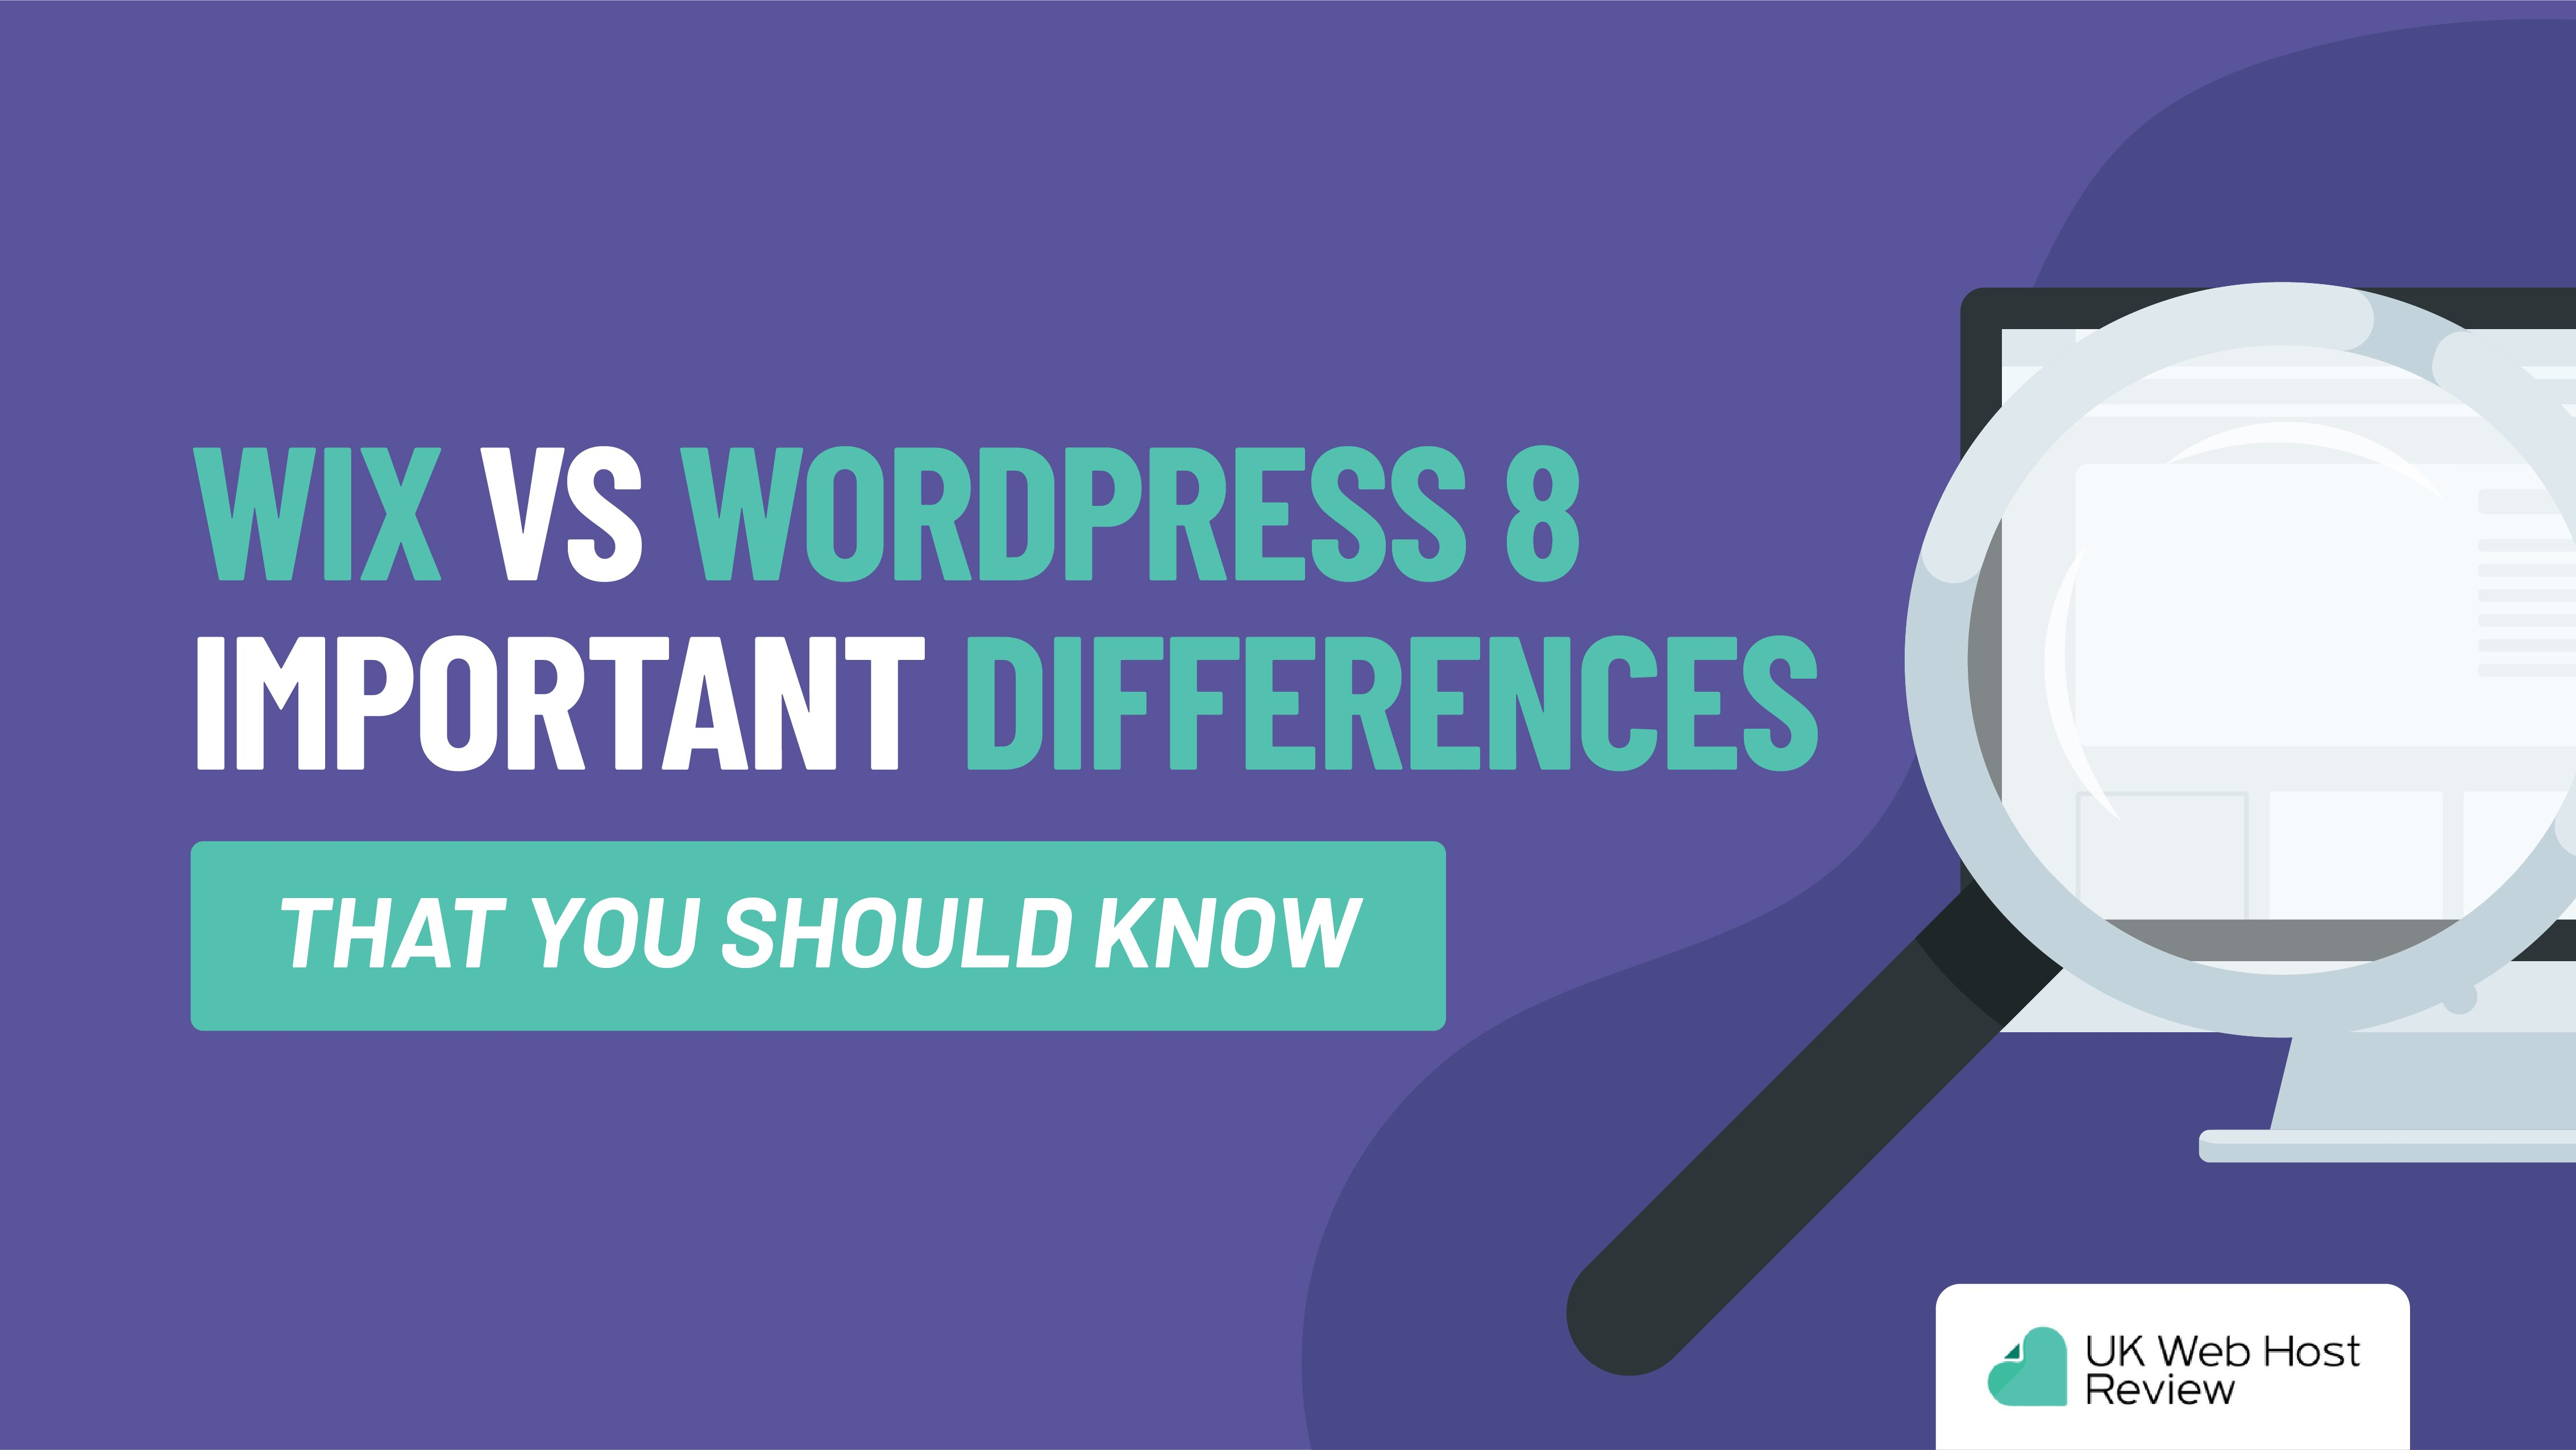 Wix Vs WordPress – 8 Important Differences That You Should Know